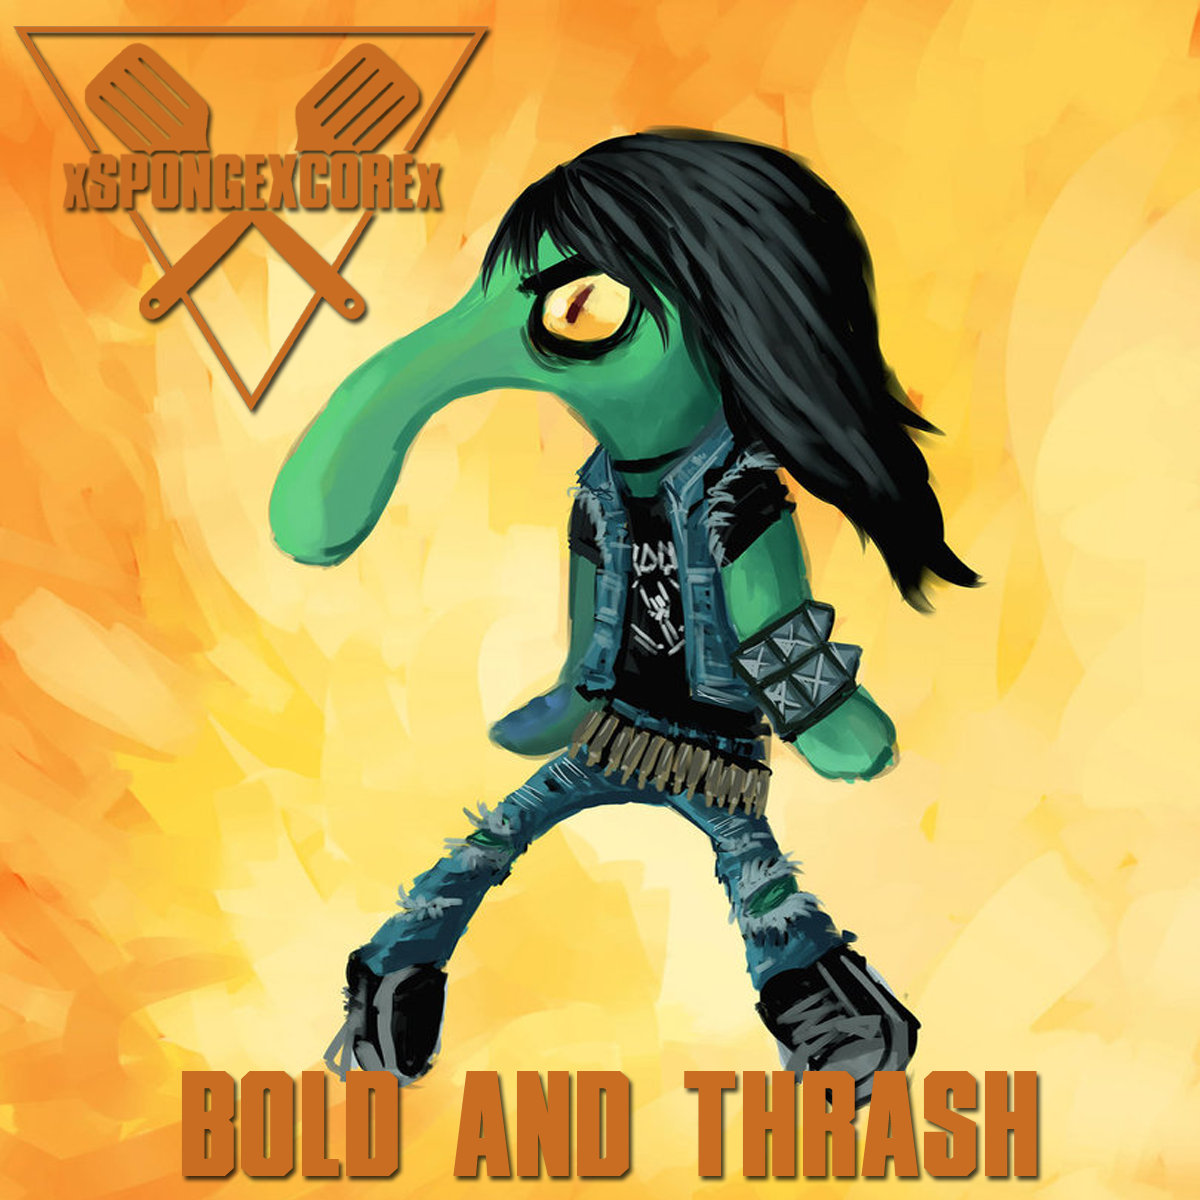 Bold And Thrash Xspongexcorex